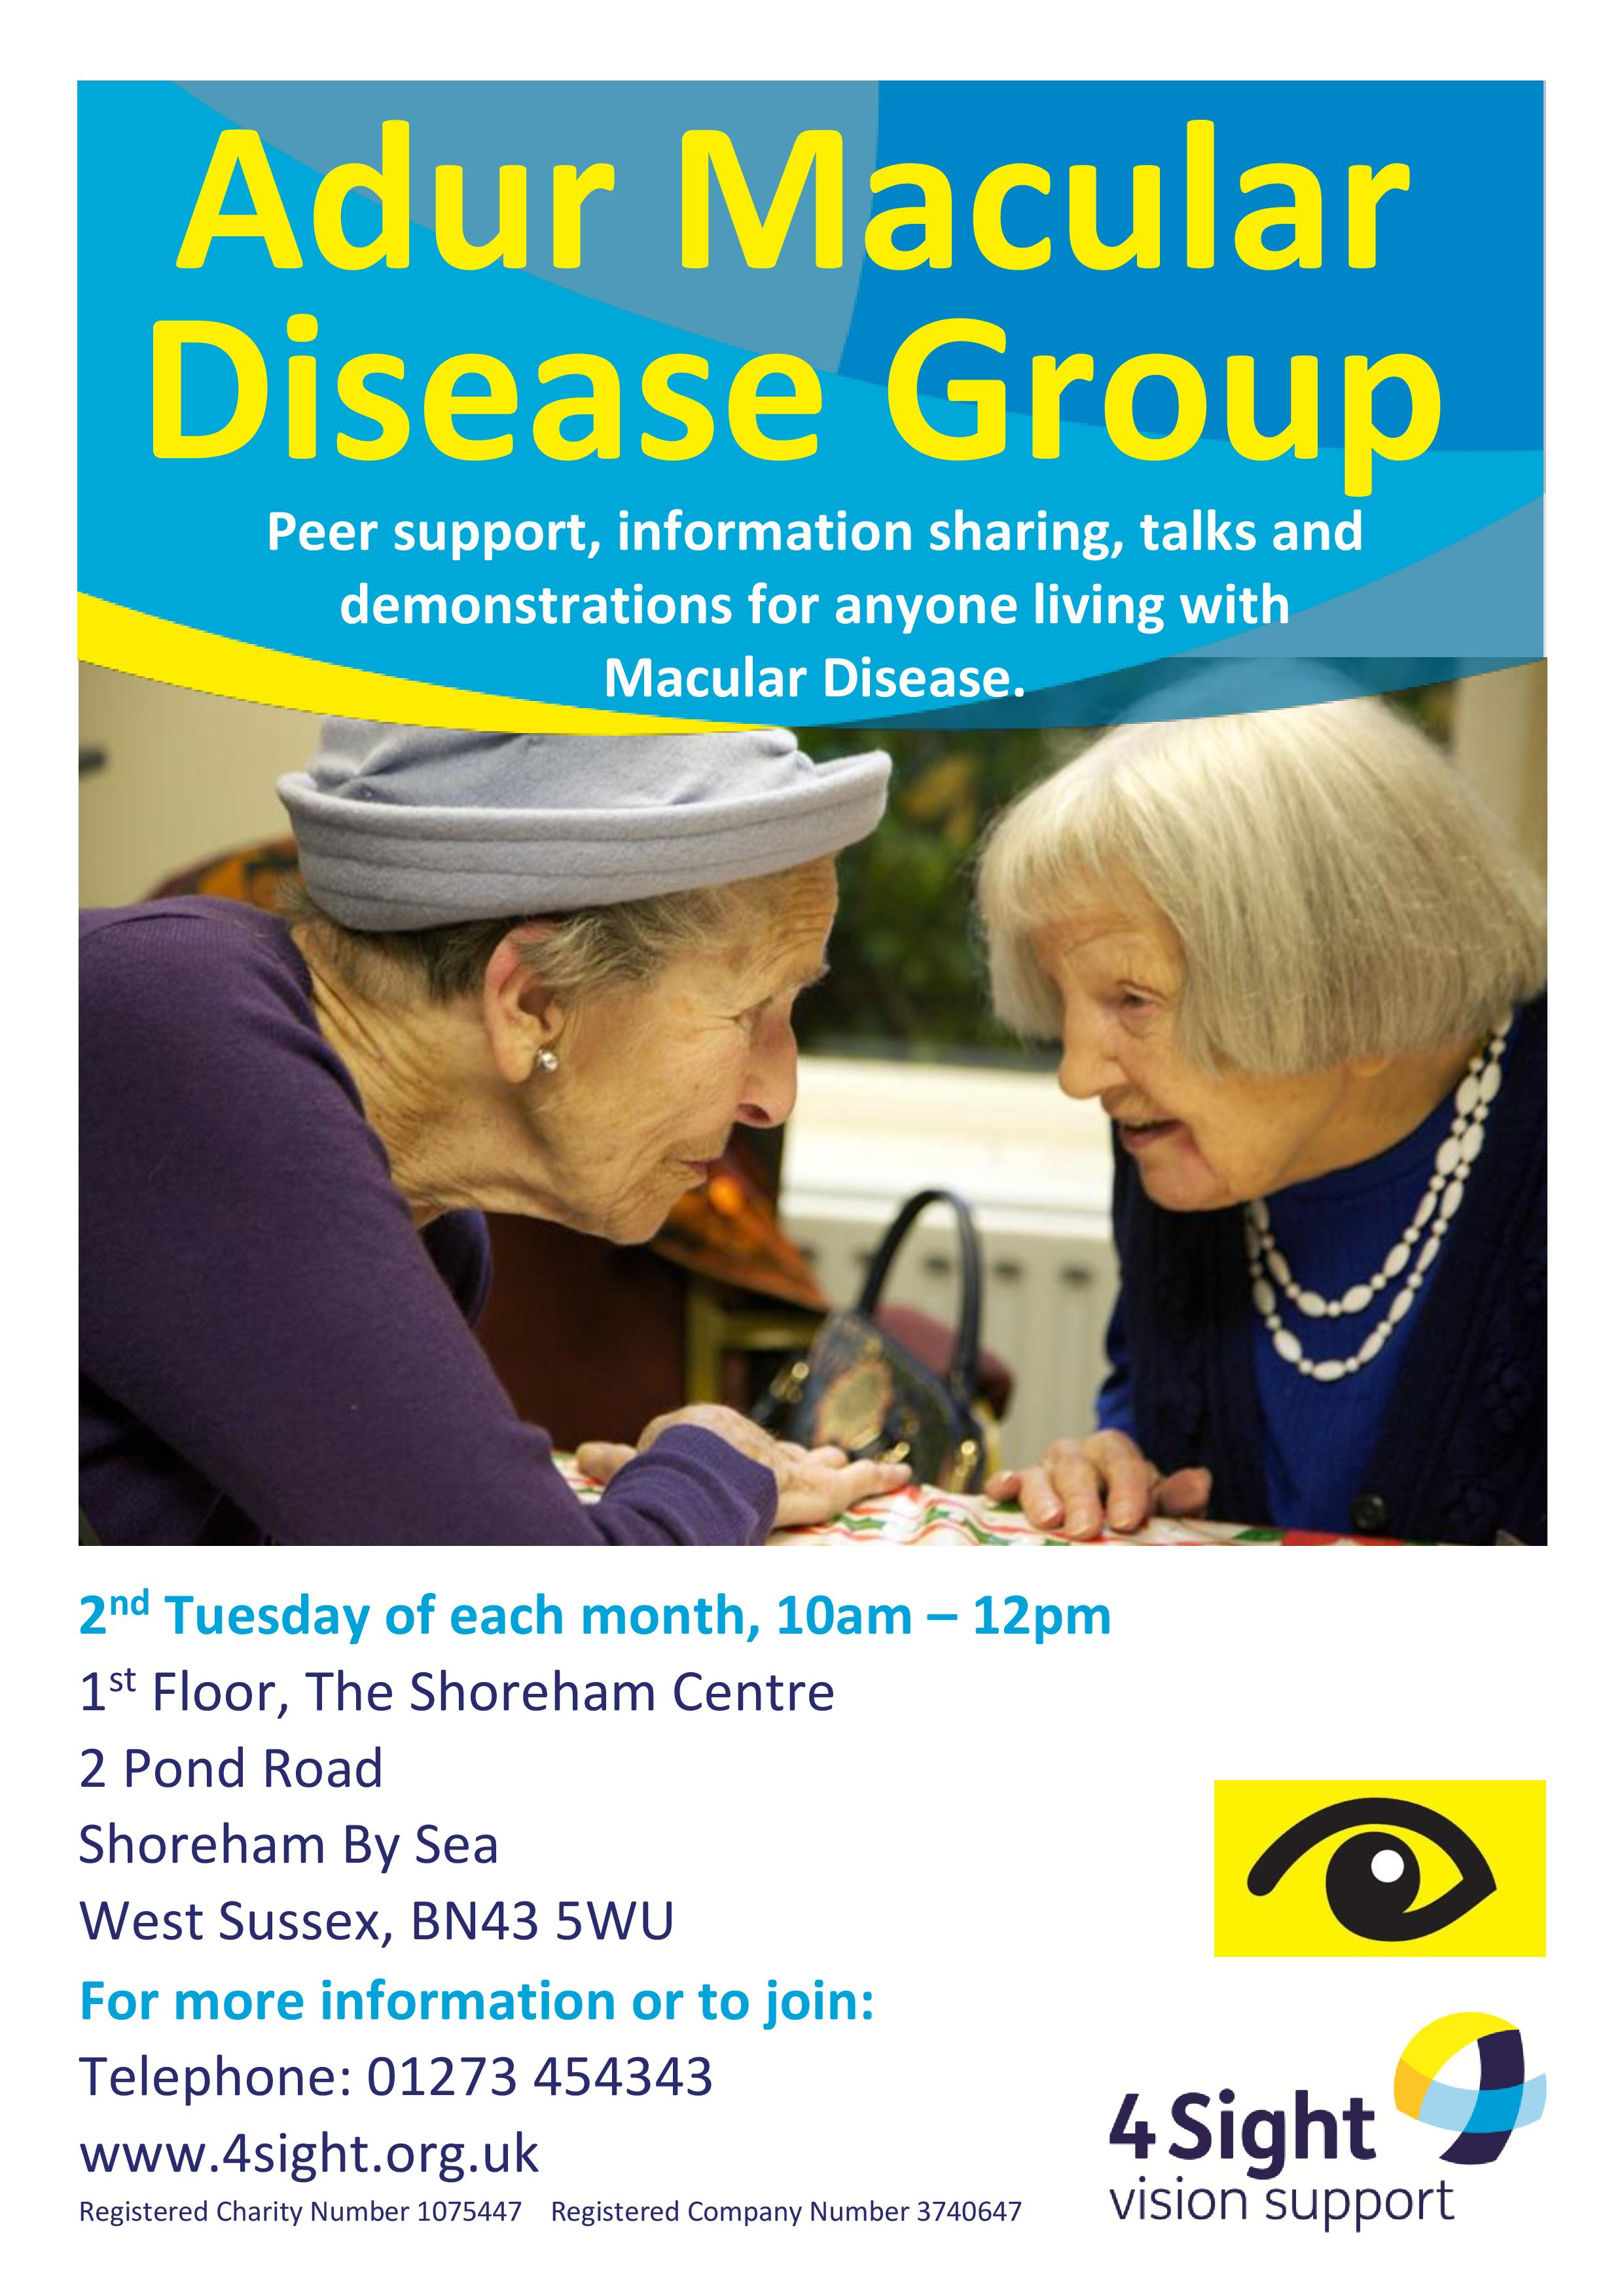 Adur Macular Disease Group